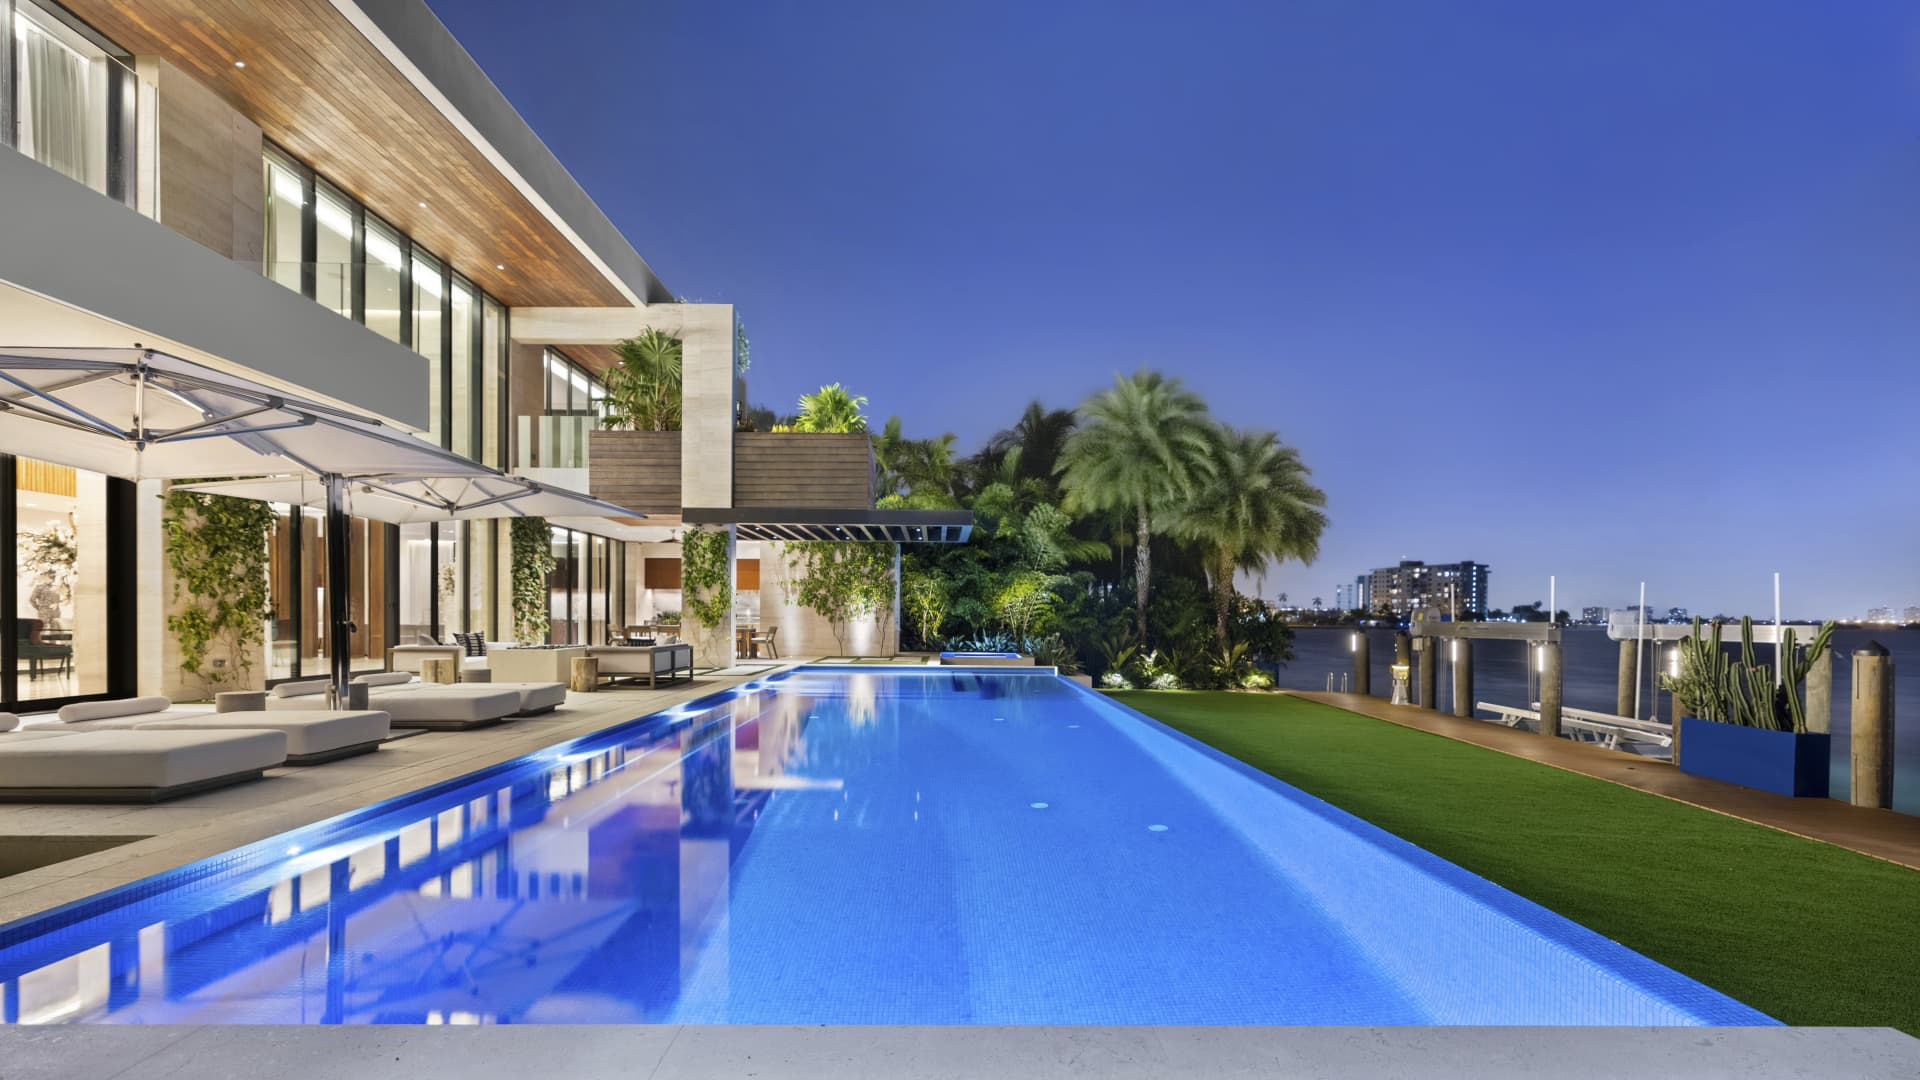 The pool and waterfront view at 224 Bal Bay Drive.